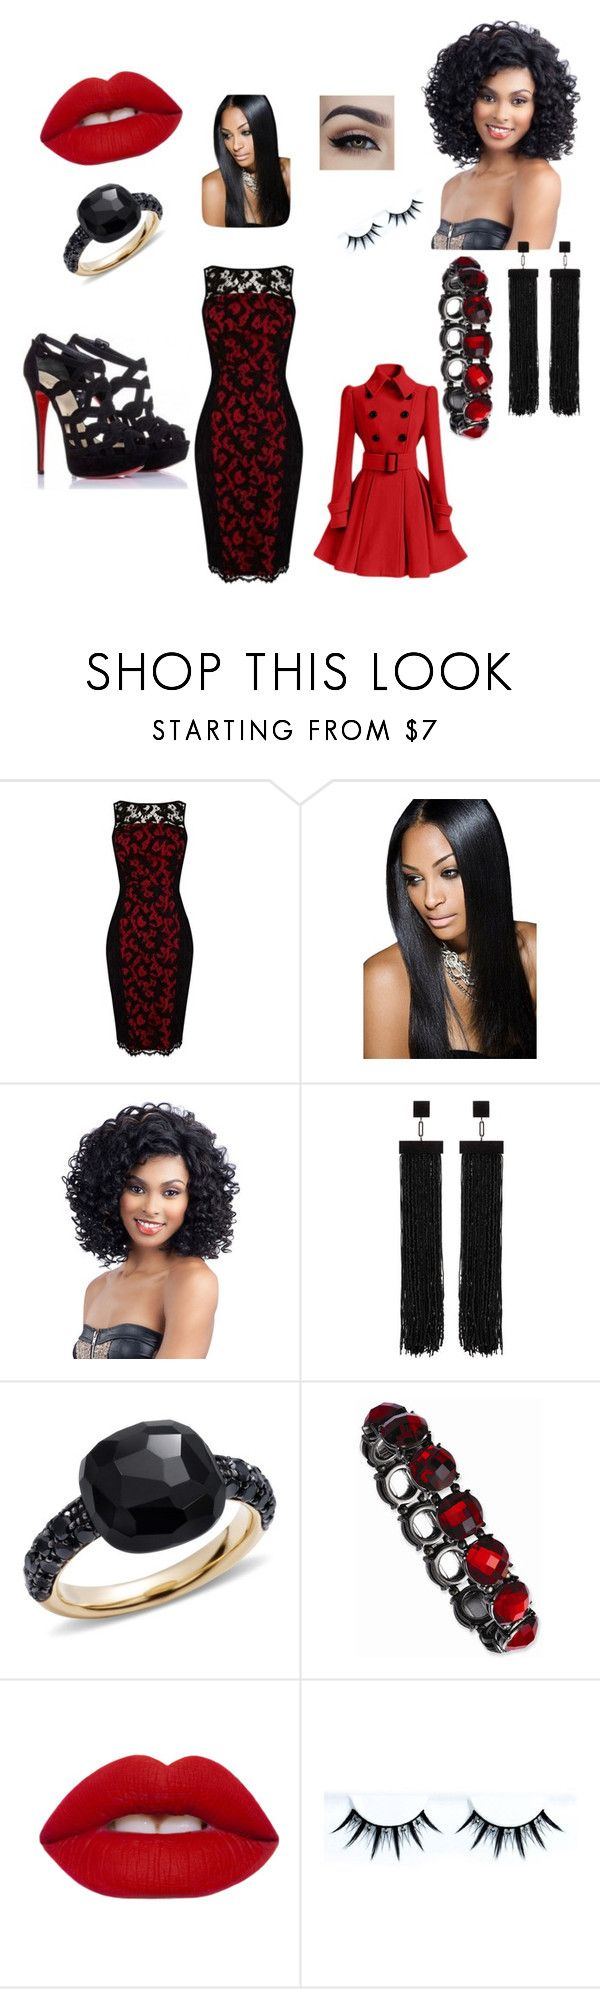 """""""Anniversary type look (gifted dress, shoes, jewelry and hair)"""" by keyairaswag ❤ liked on Polyvore featuring Christian Louboutin, Karen Millen, Tom Ford, Pomellato and Lime Crime"""